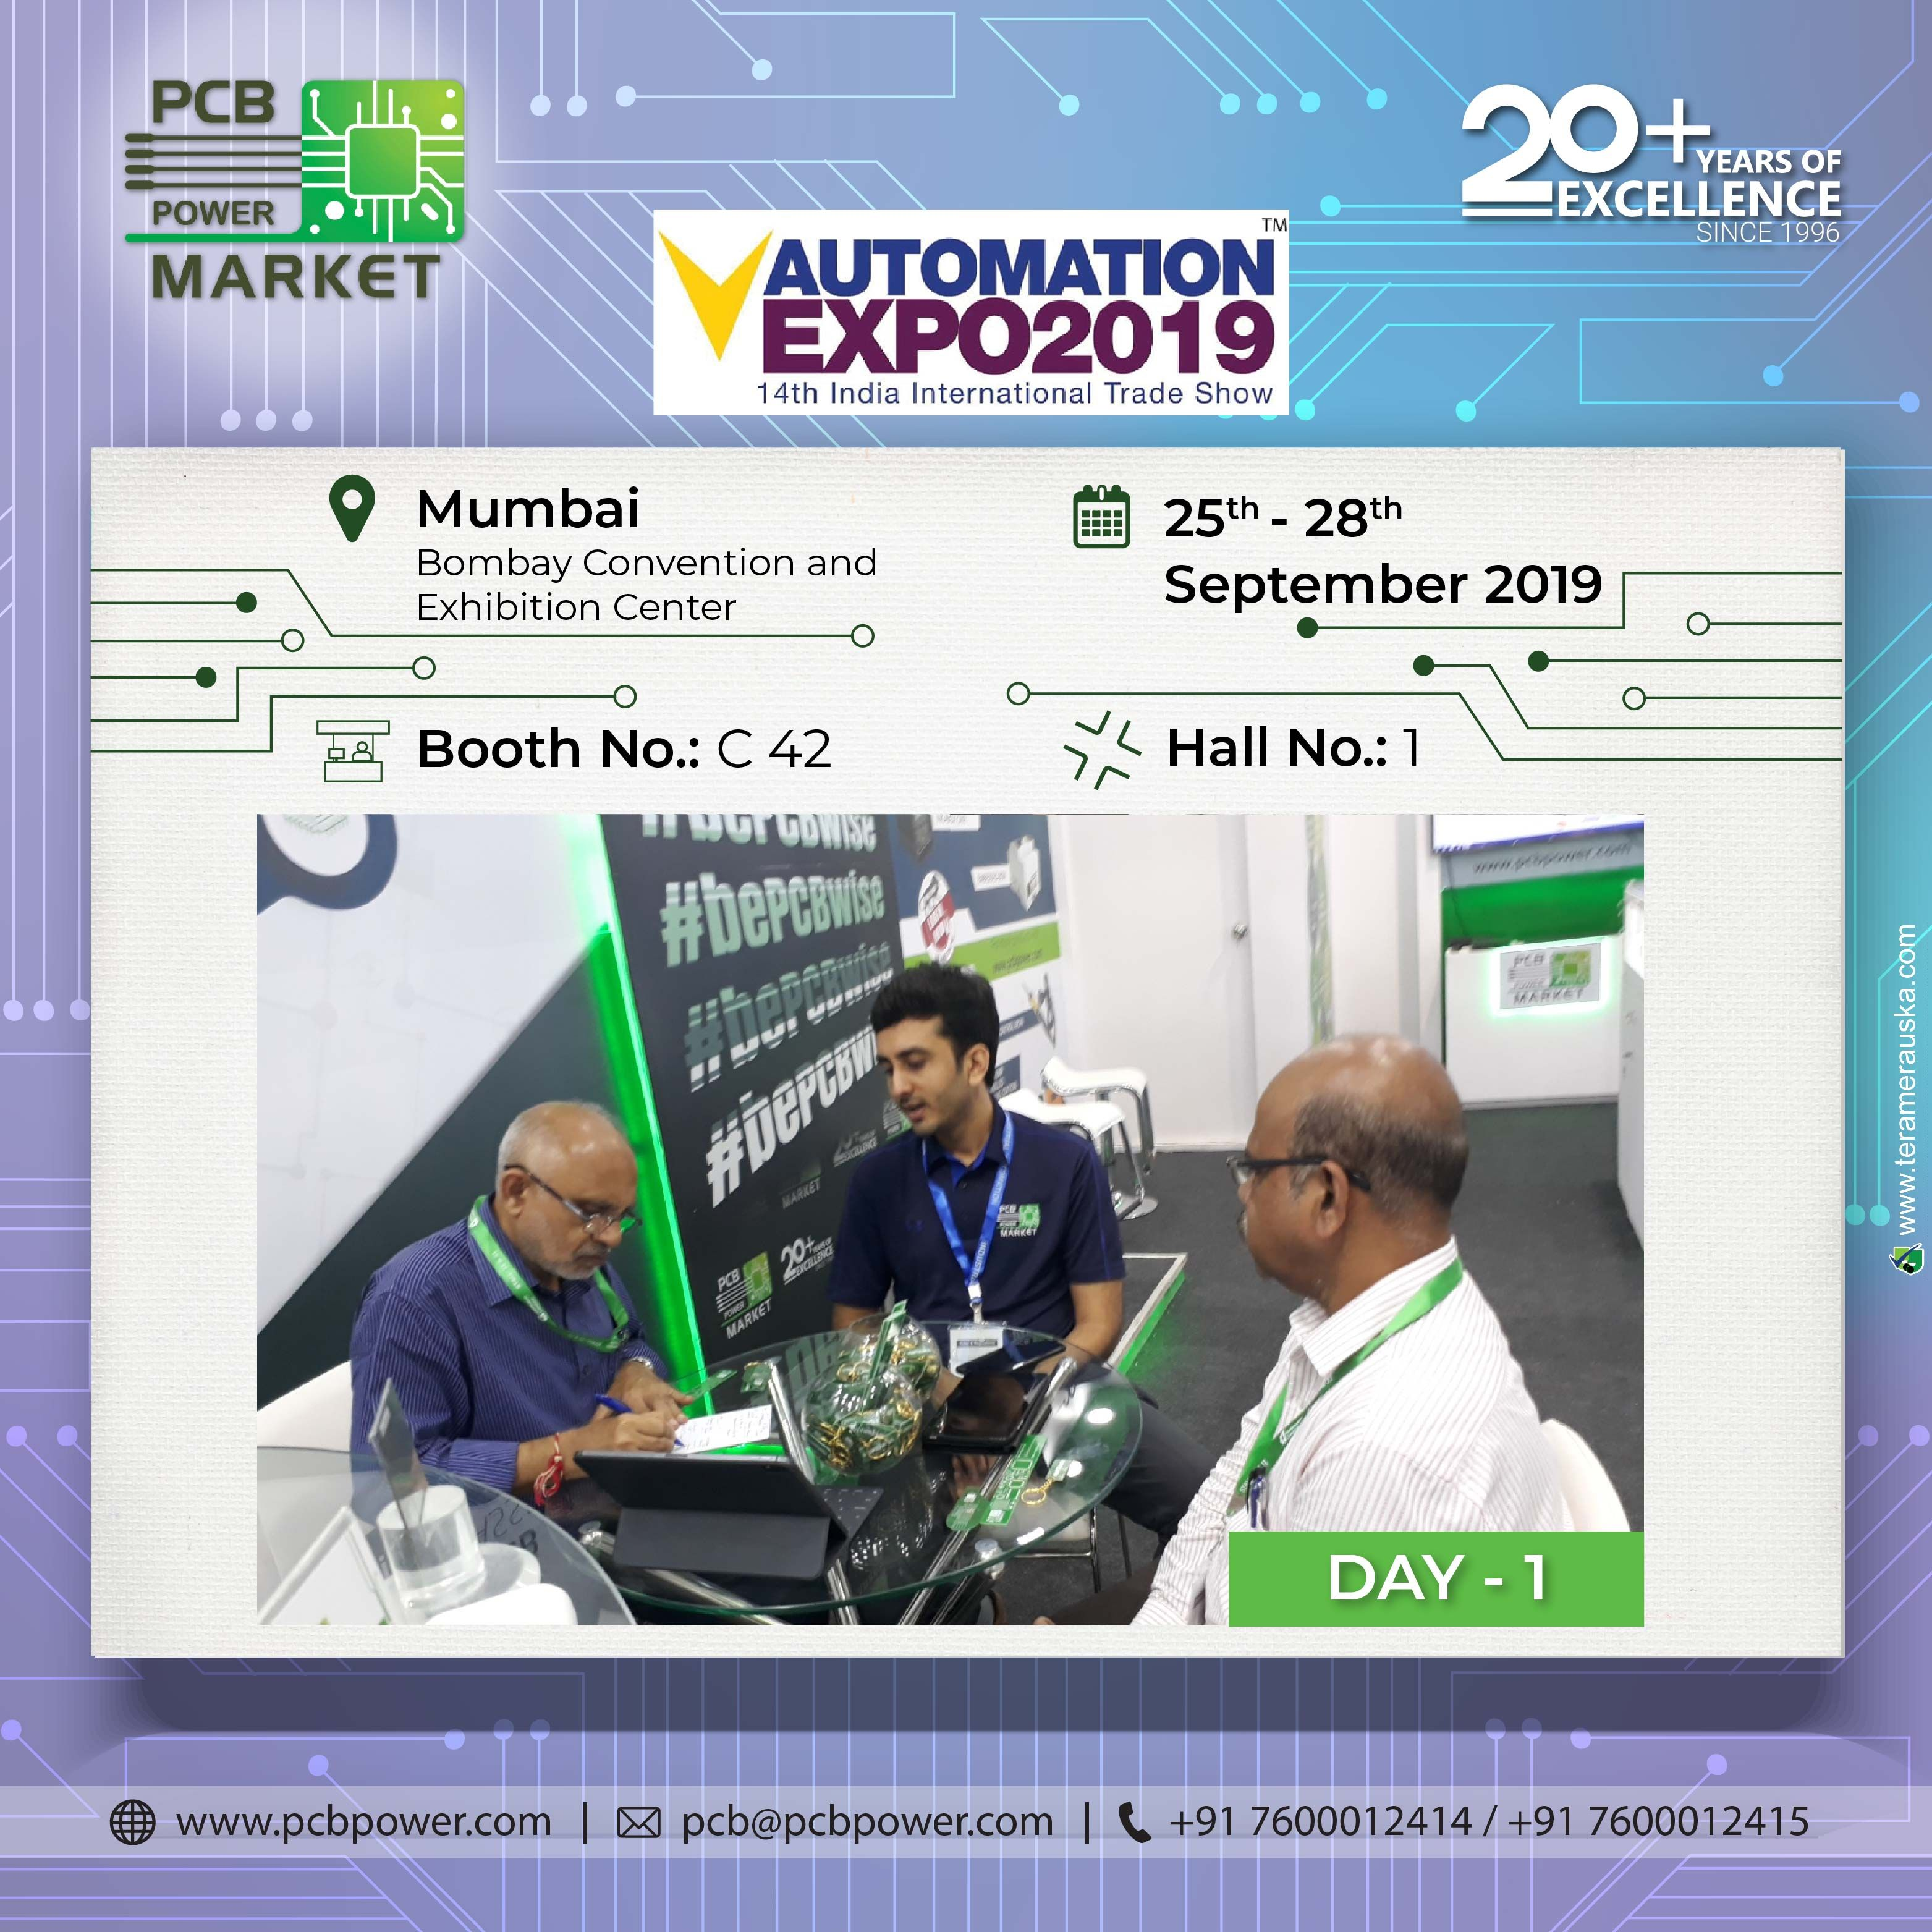 Day 1 Pcb Power Market Mumbai Automation Expo 2019 Booth No C42 Hall No 1 Bombay Convention And Exhibition Center M Marketing Automation Virtual Design